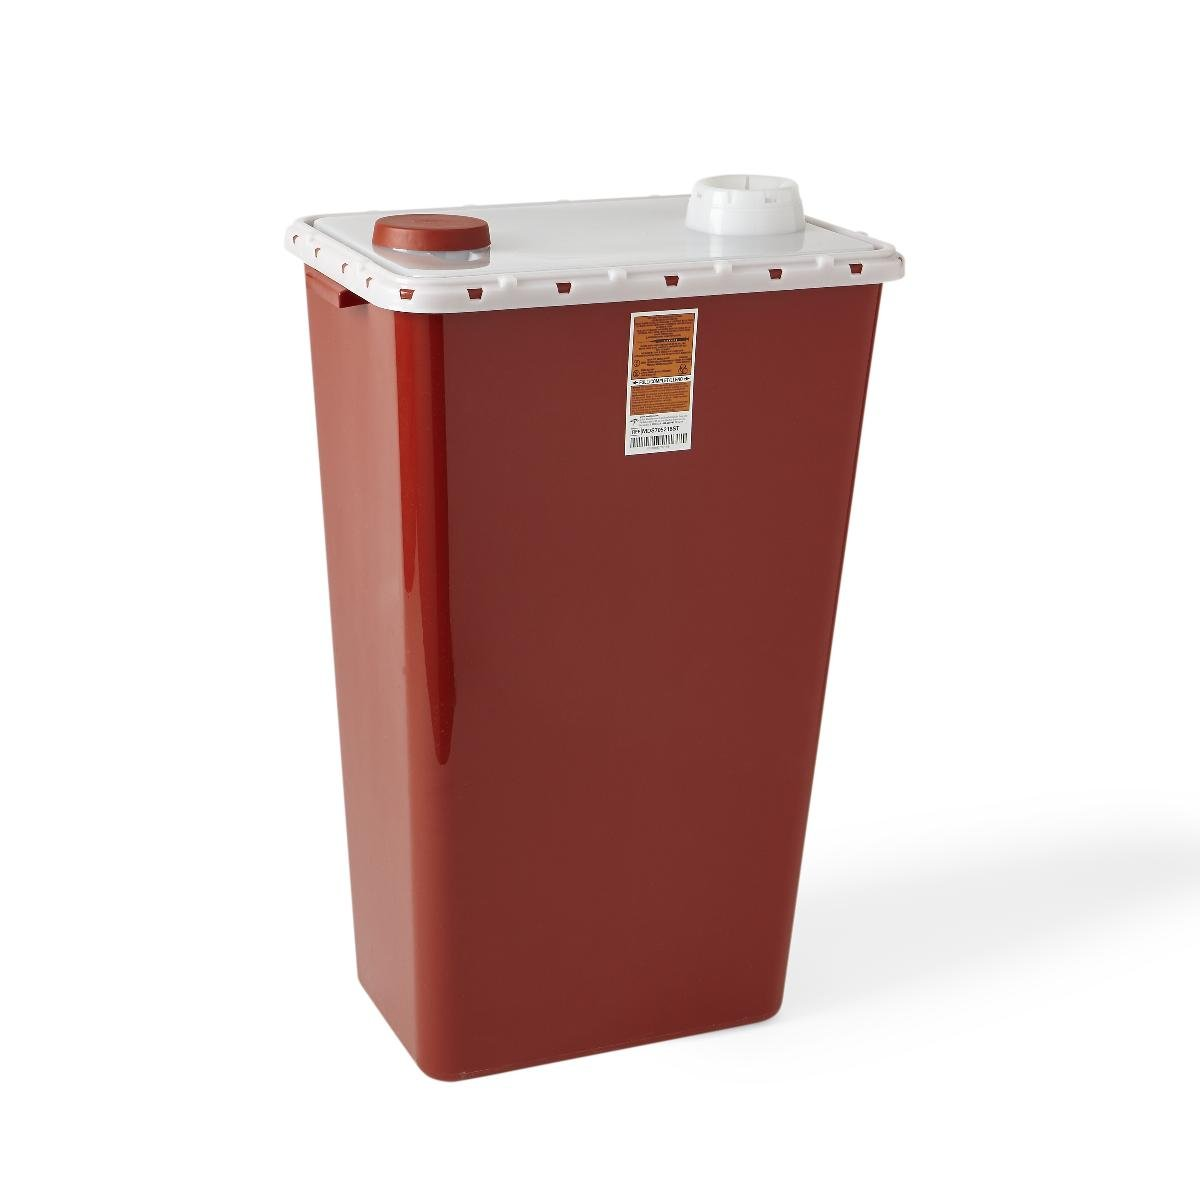 Medline MDS705218ST Biohazard Containers, 18 gal, Star, Red (Pack of 5)